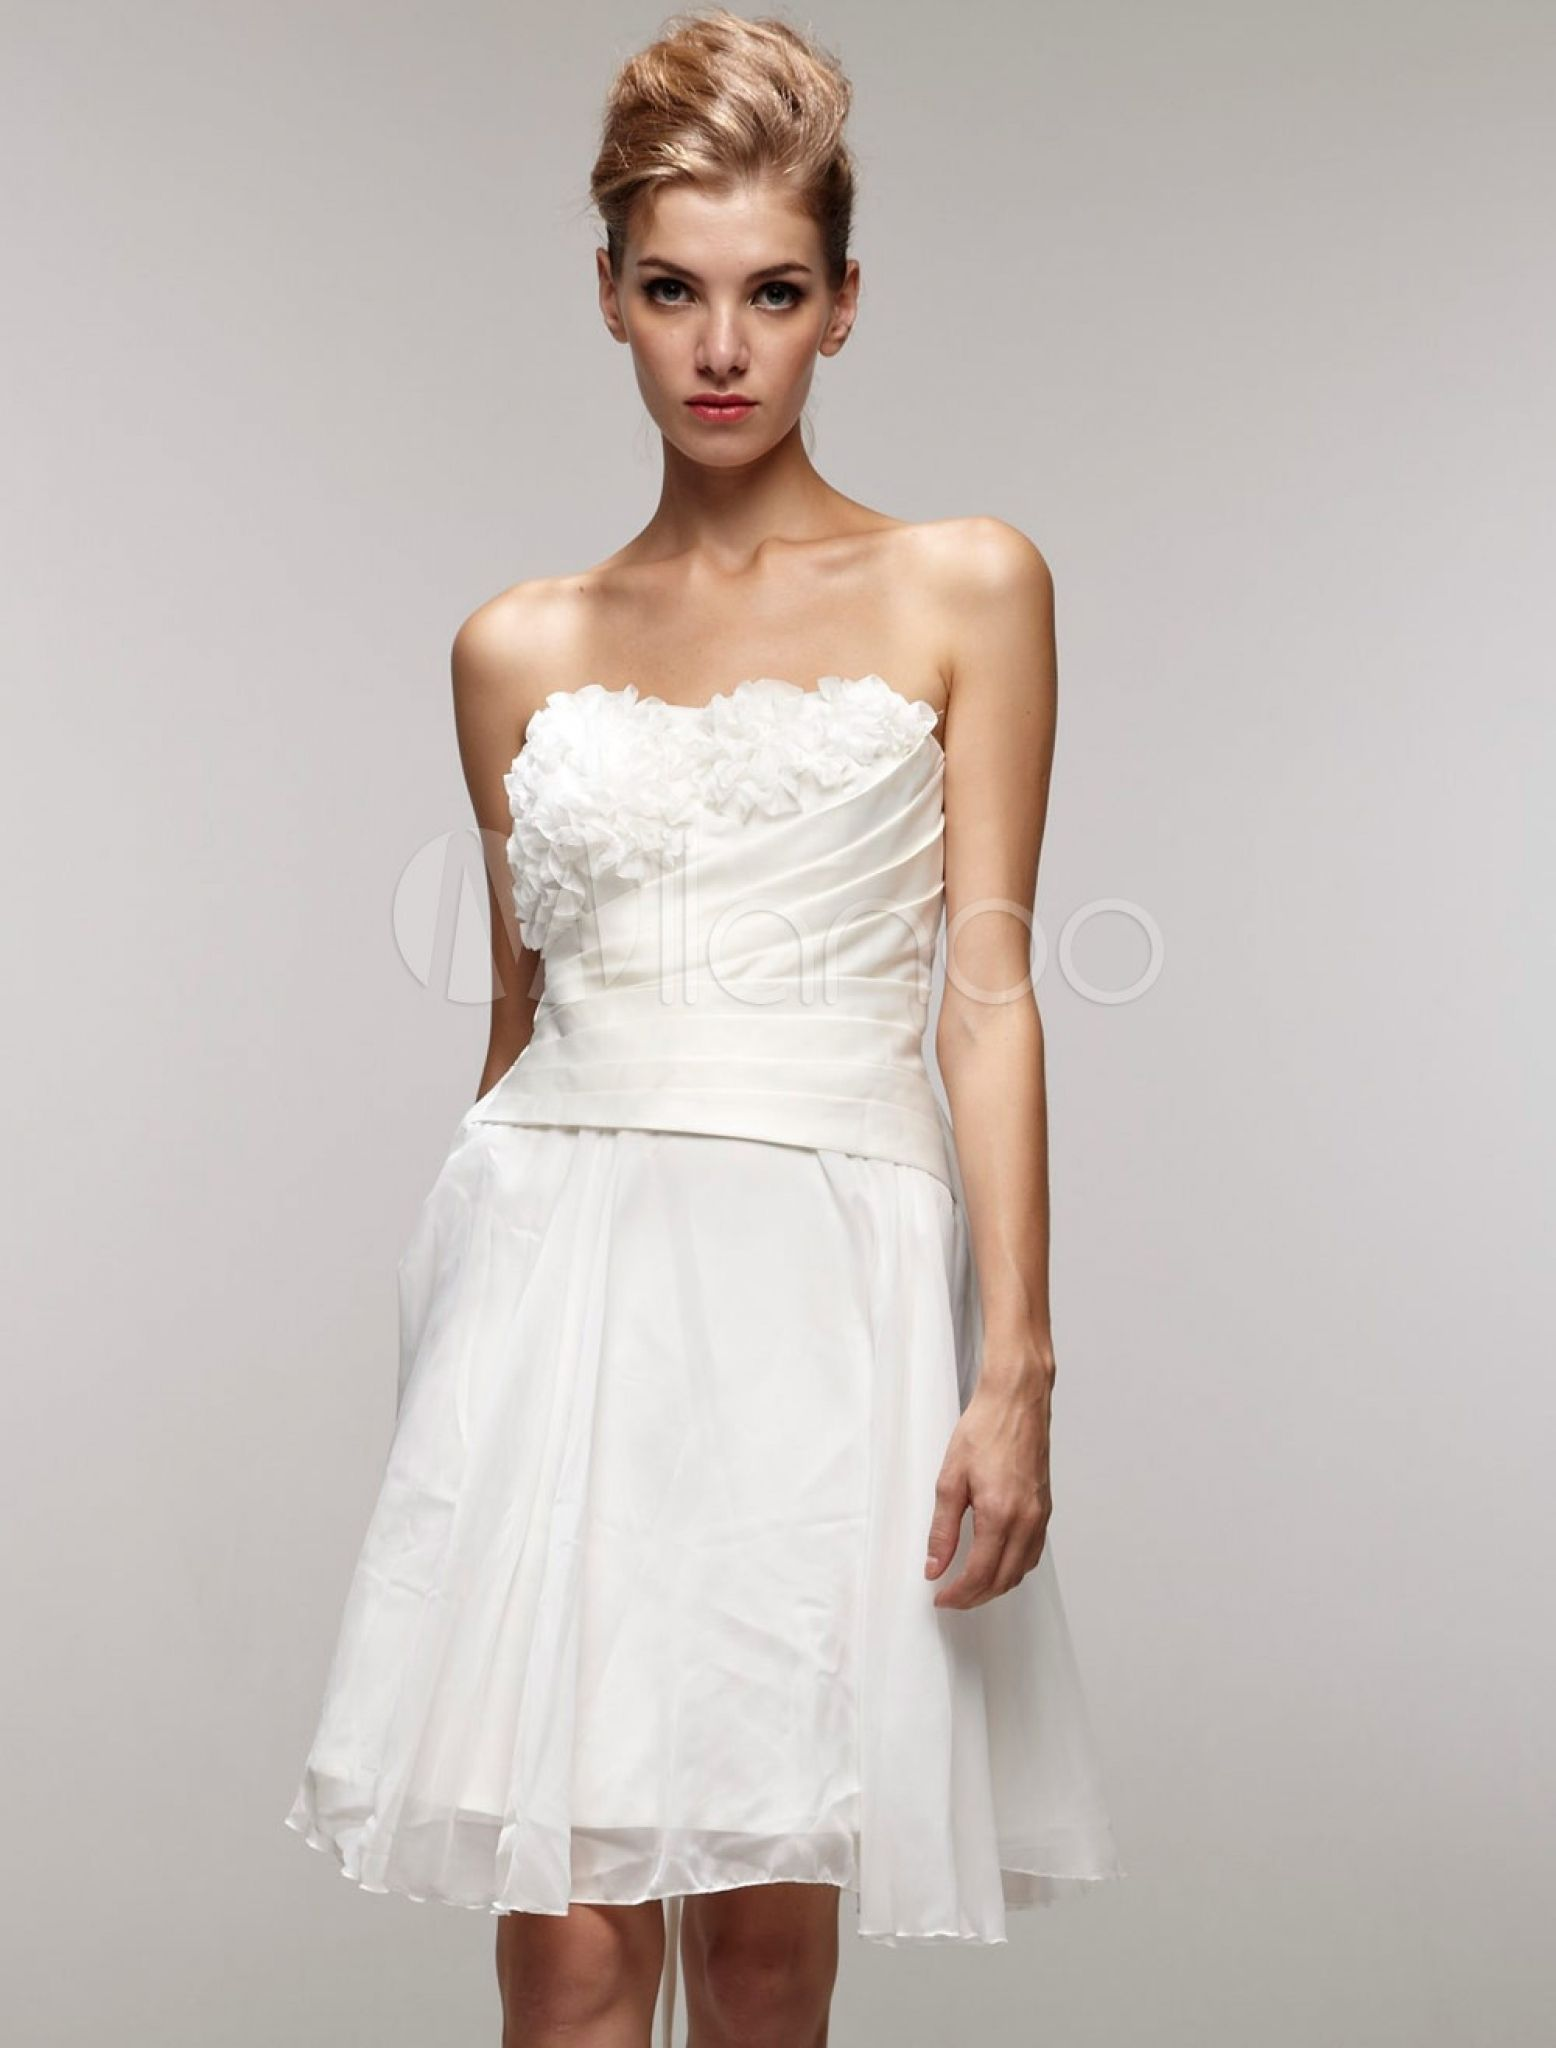 Wedding Dresses Under 50 Dollars Cute Dresses For A Wedding Check